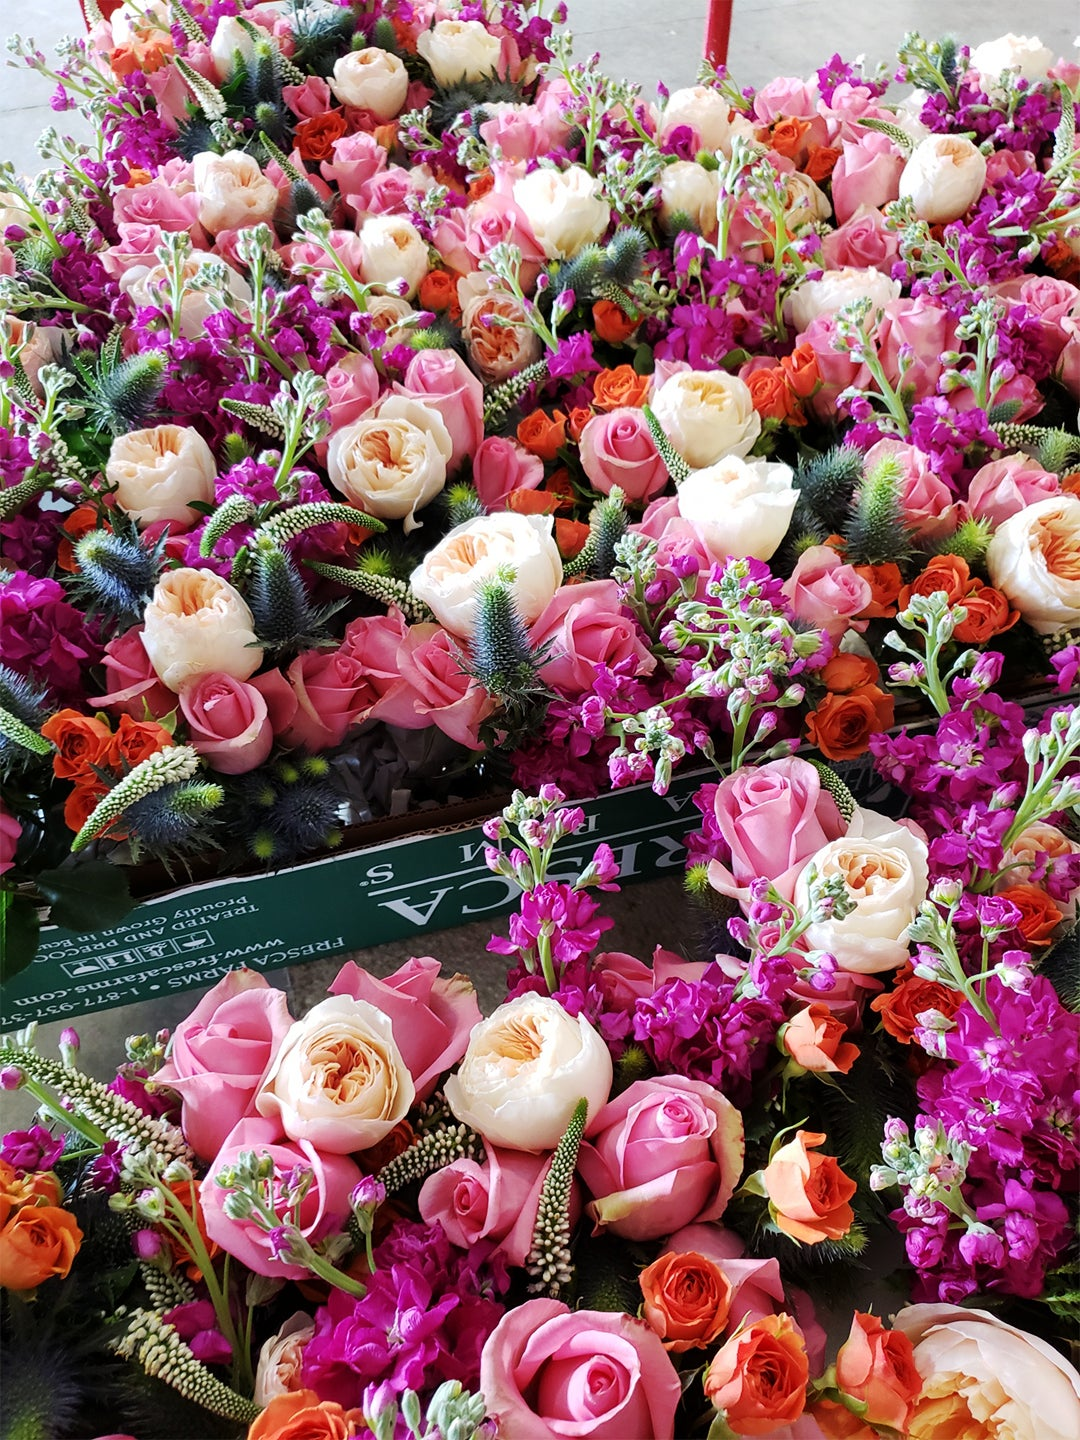 lots of roses in pink and white